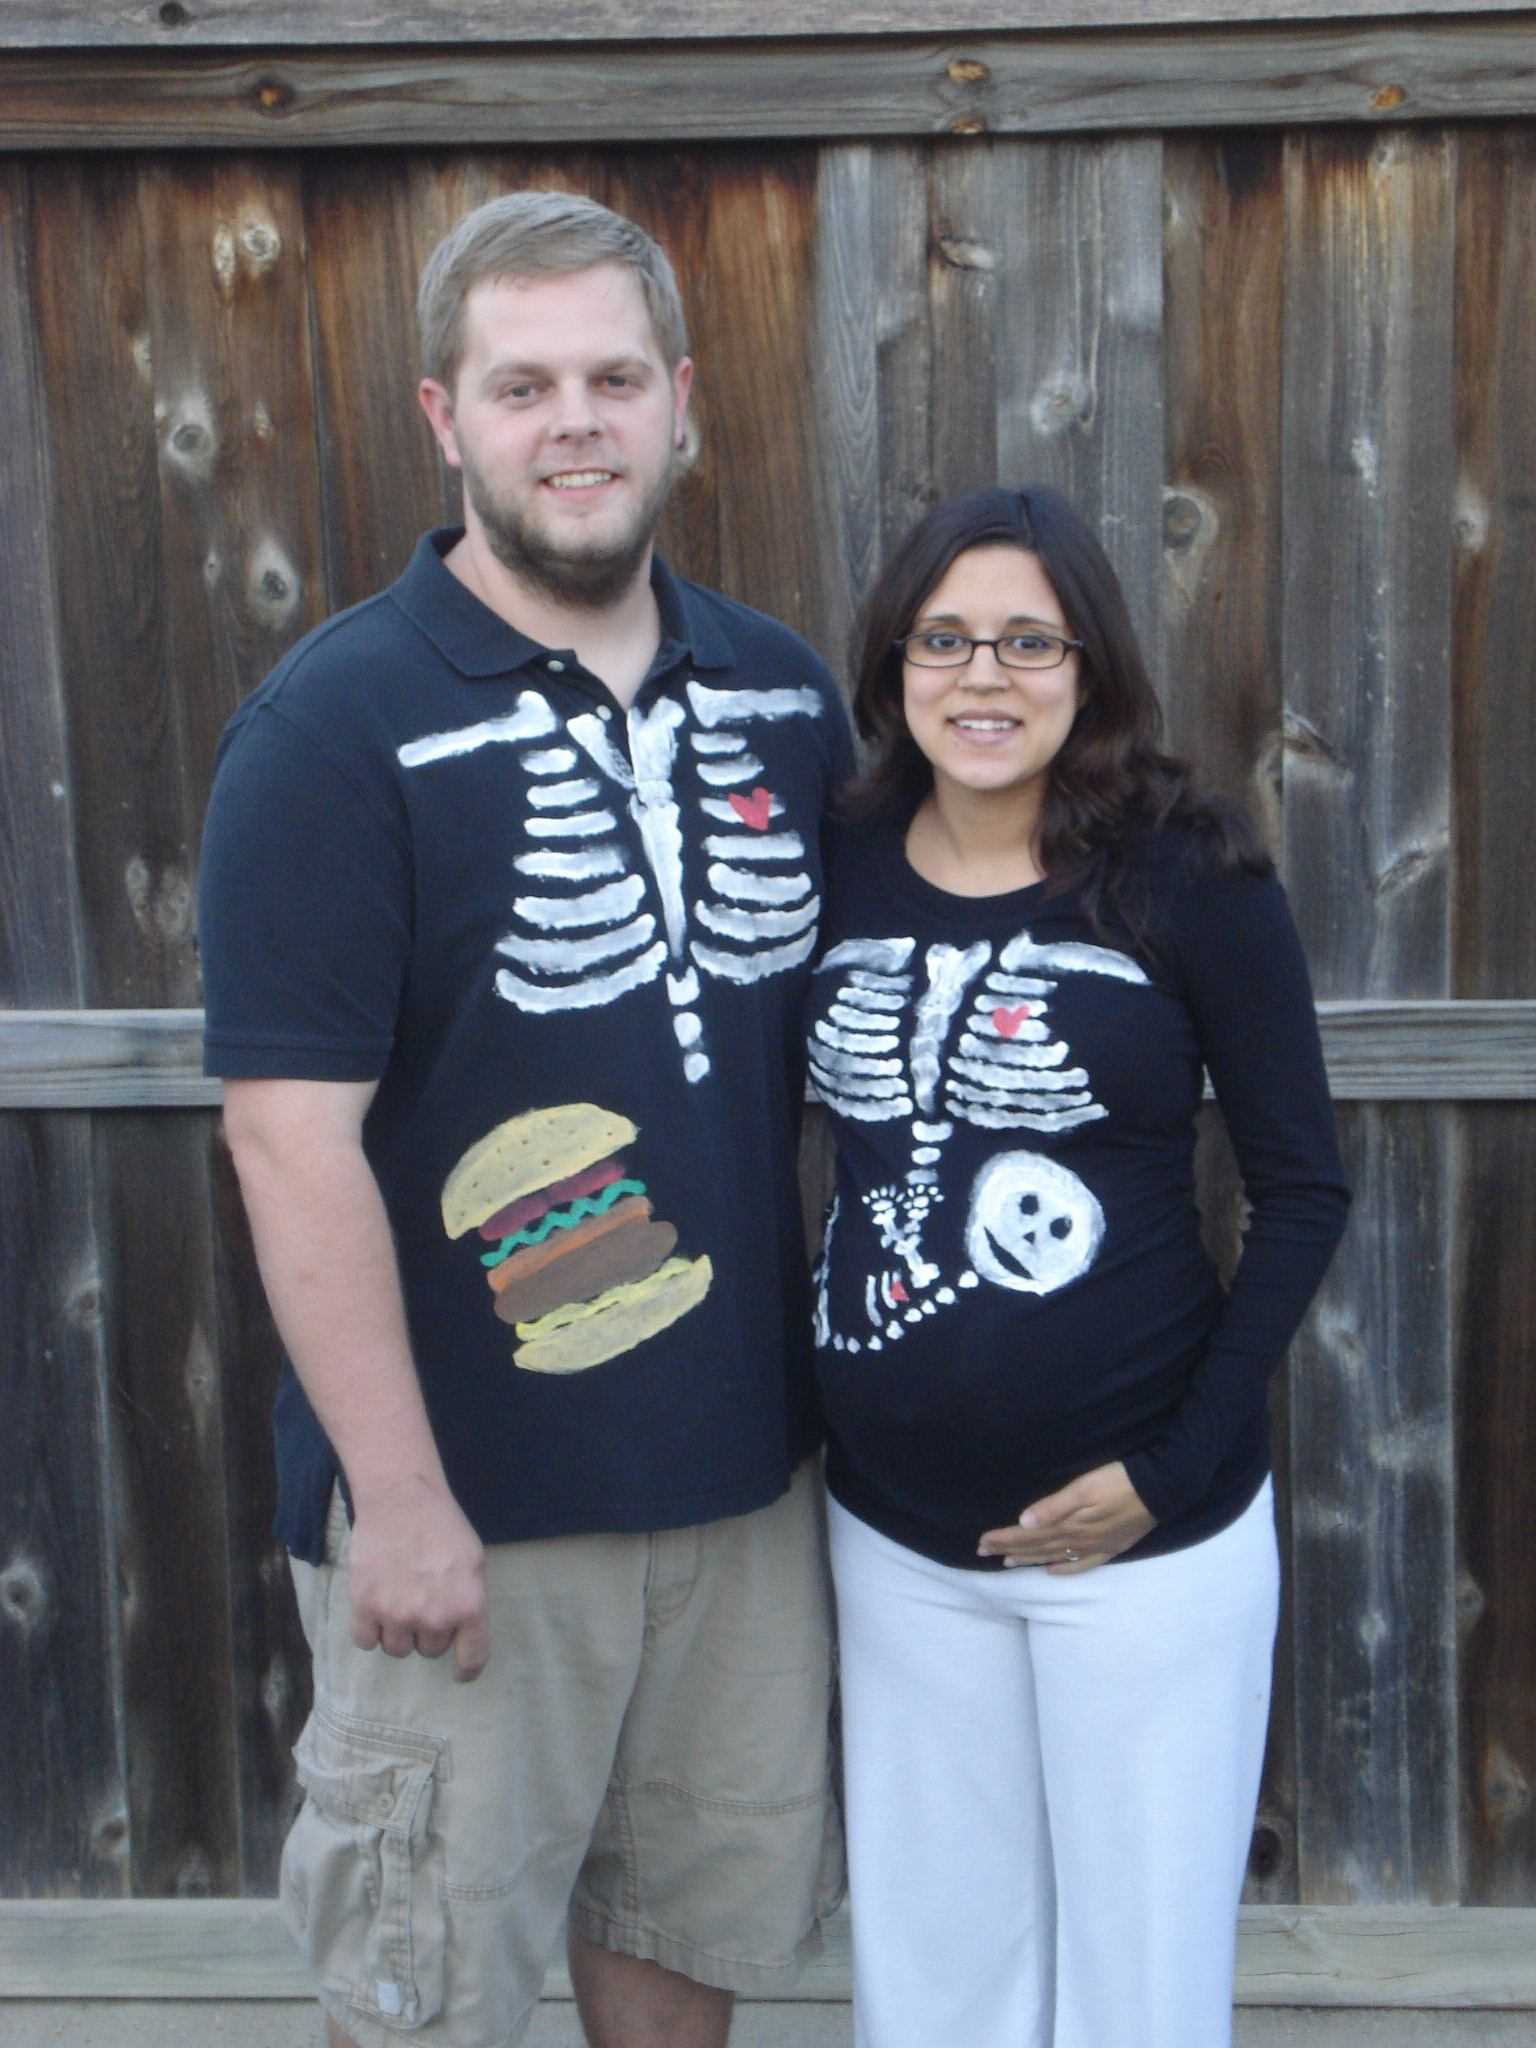 pregnancy halloween costume - Pregnancy Halloween Costume Ideas For Couples